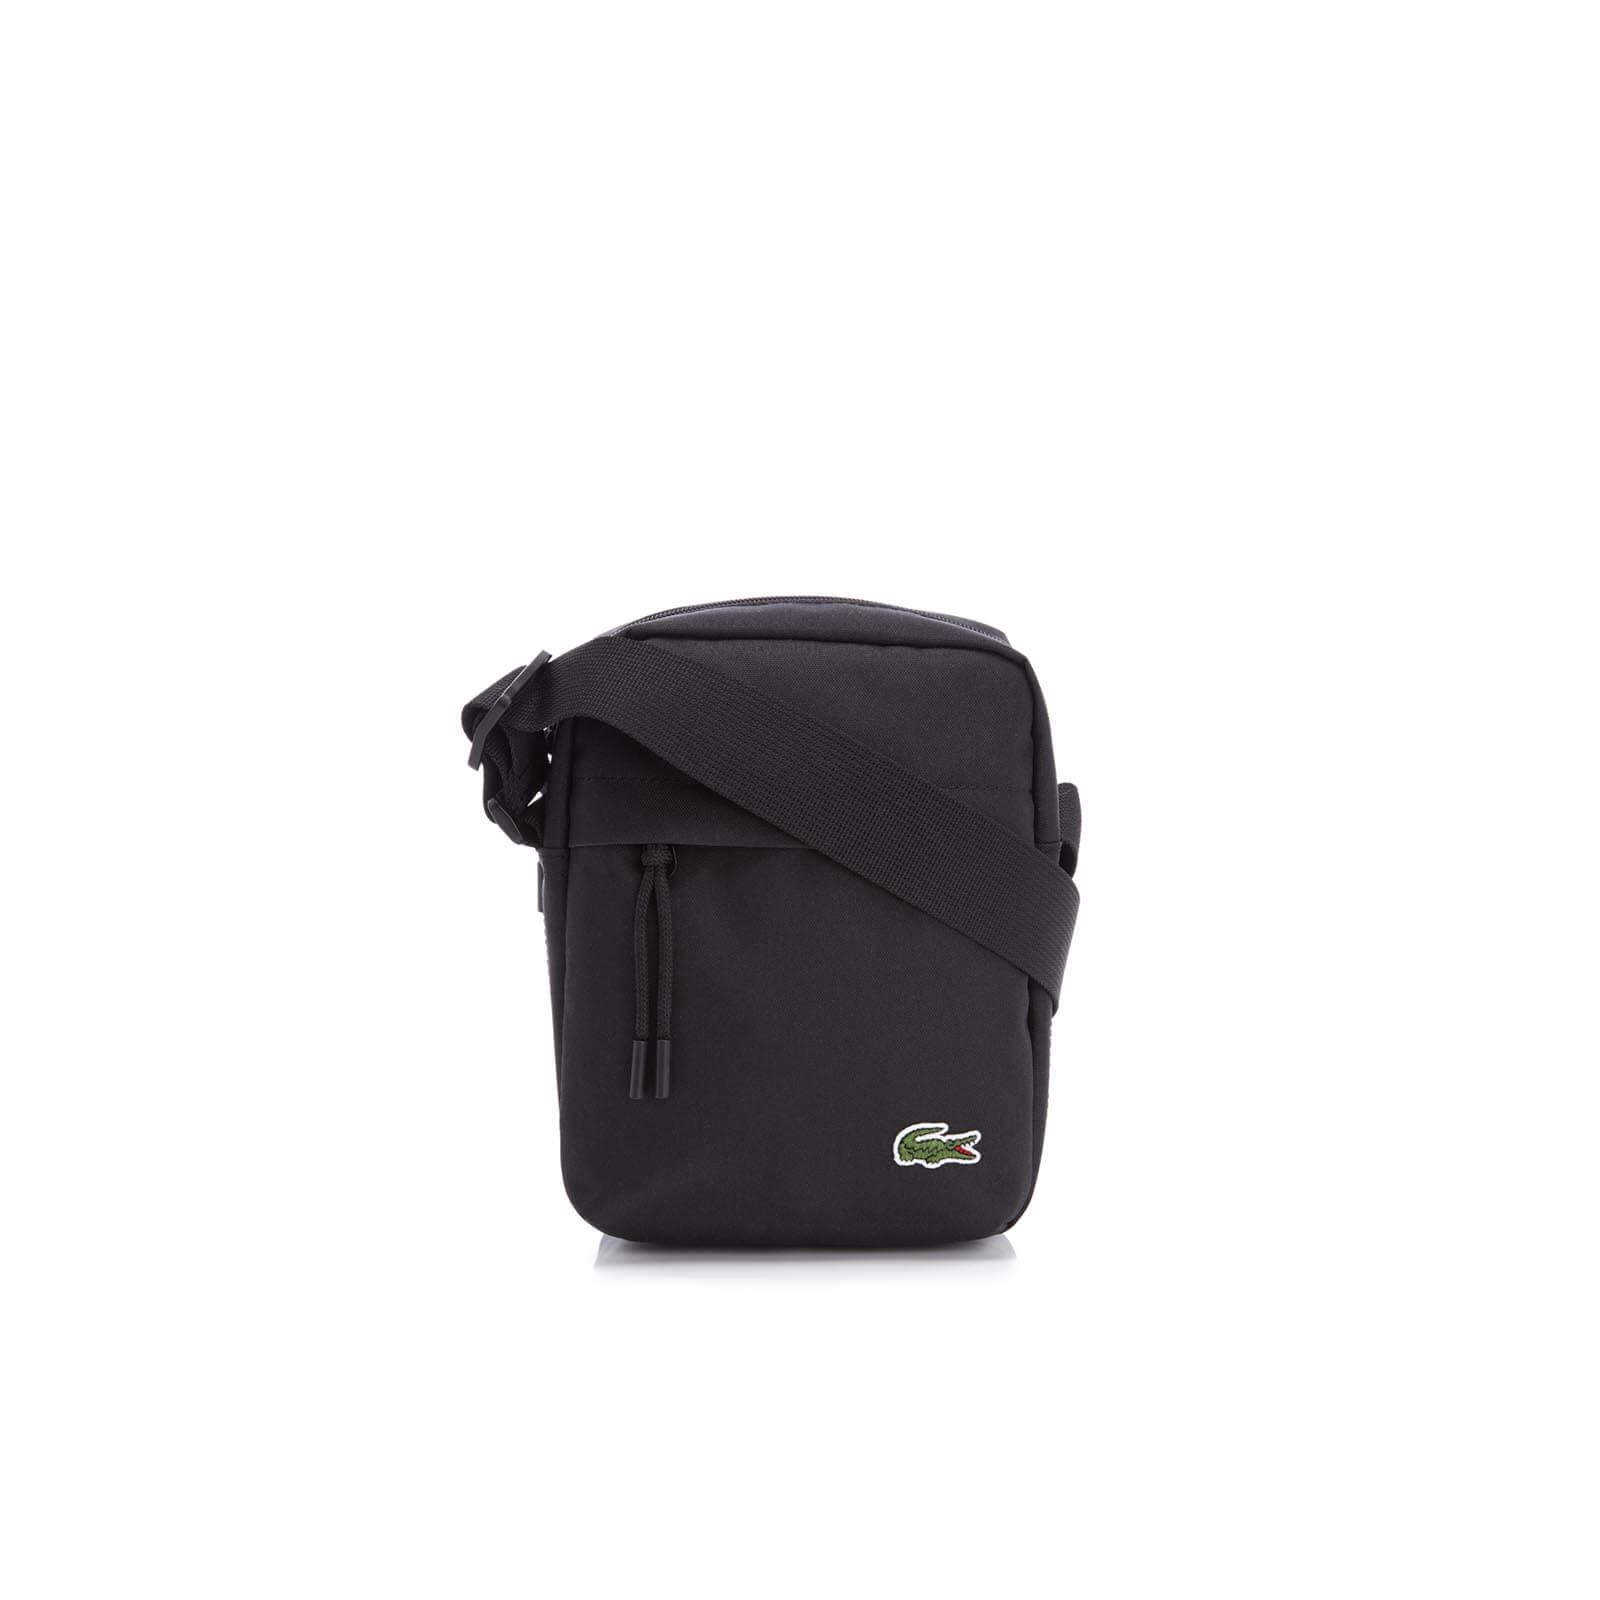 4f293c6c8 Lacoste Men s Vertical Camera Bag - Black - Free UK Delivery over £50